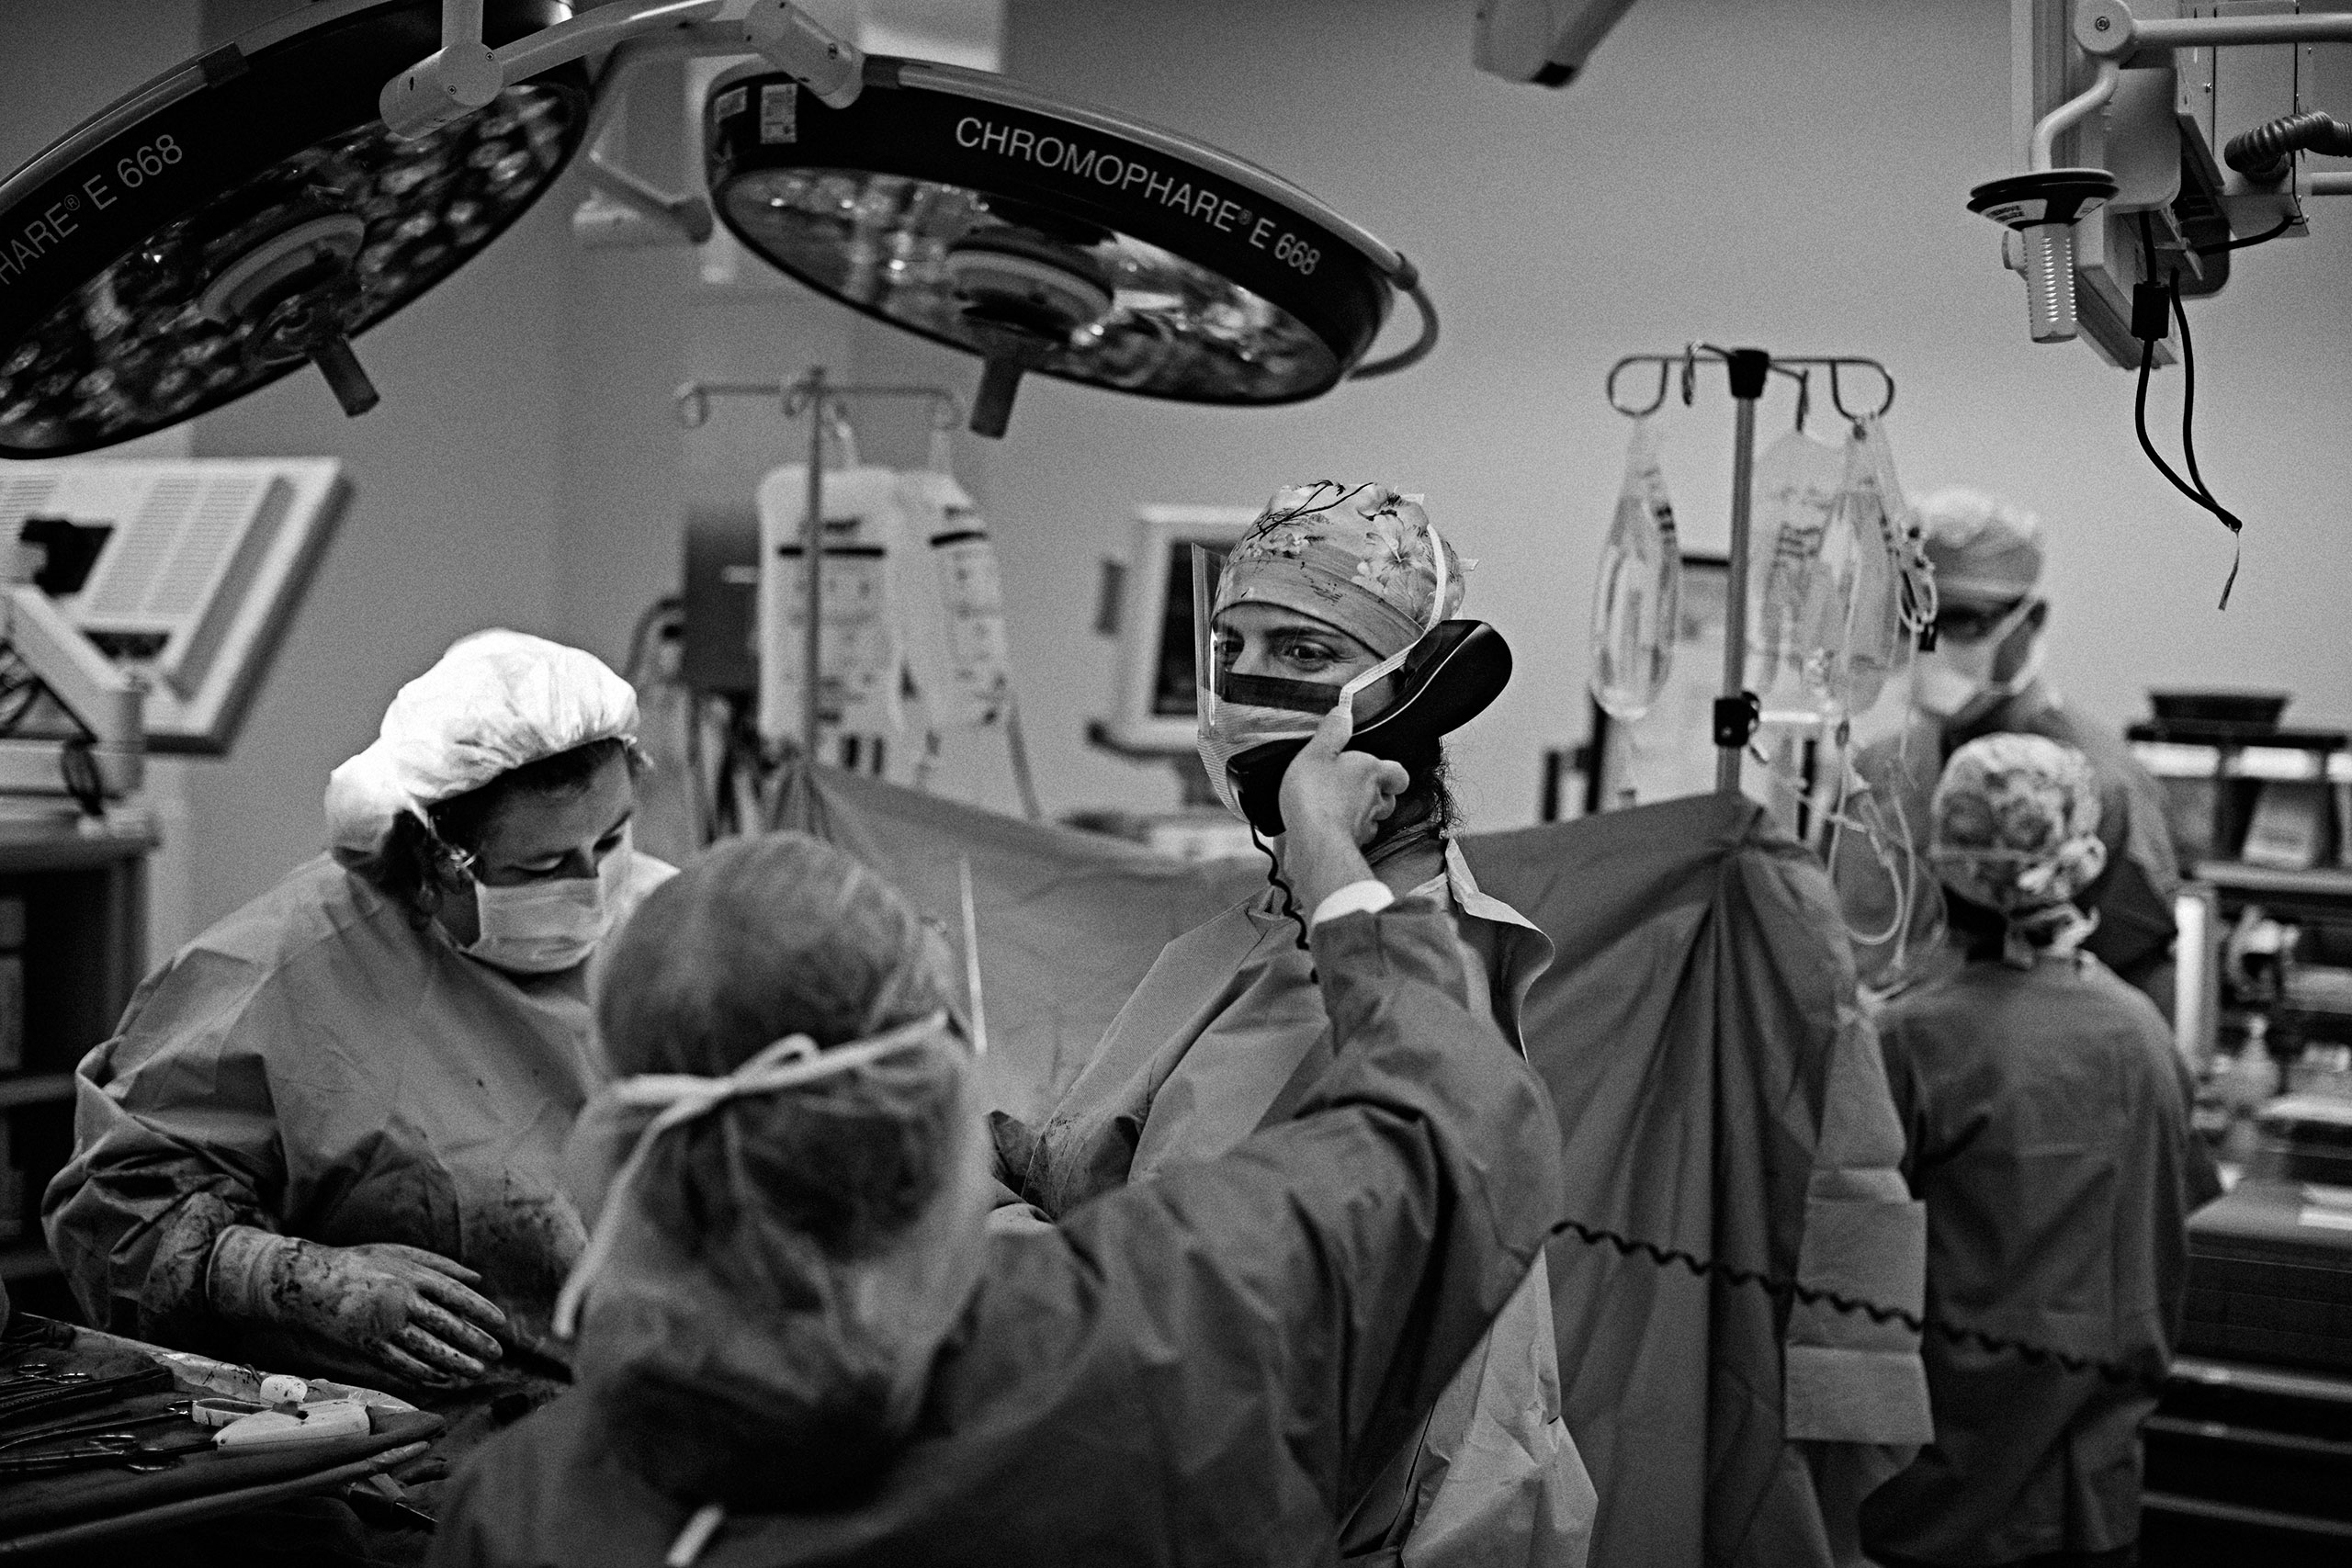 Dr. Arghavan Salles (Center) and Dr. Adela Garland (Left) in the operating room. Dr. Salles is on the phone canceling her dinner plans with her mother as the surgery has been prolonged by hours as a larger than expected tumor was discovered inside the patient.From  See the Grueling Life of an American Surgeon